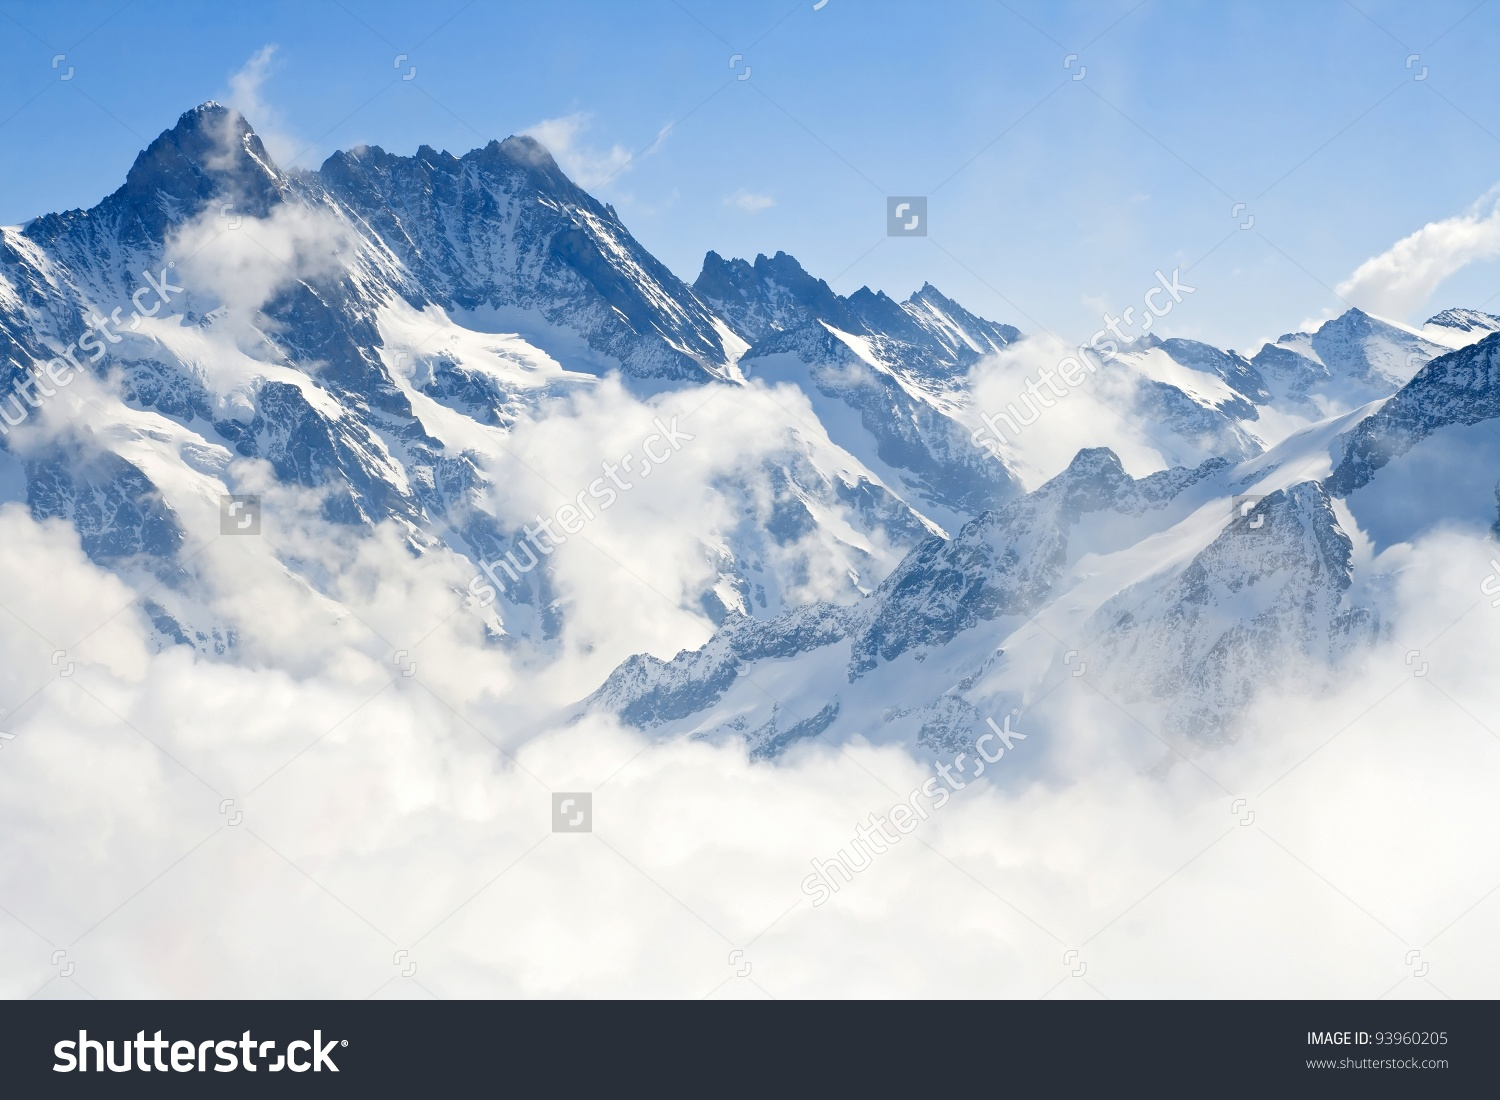 Alpine Alps Mountain Landscape Jungfraujoch Top Stock Photo.